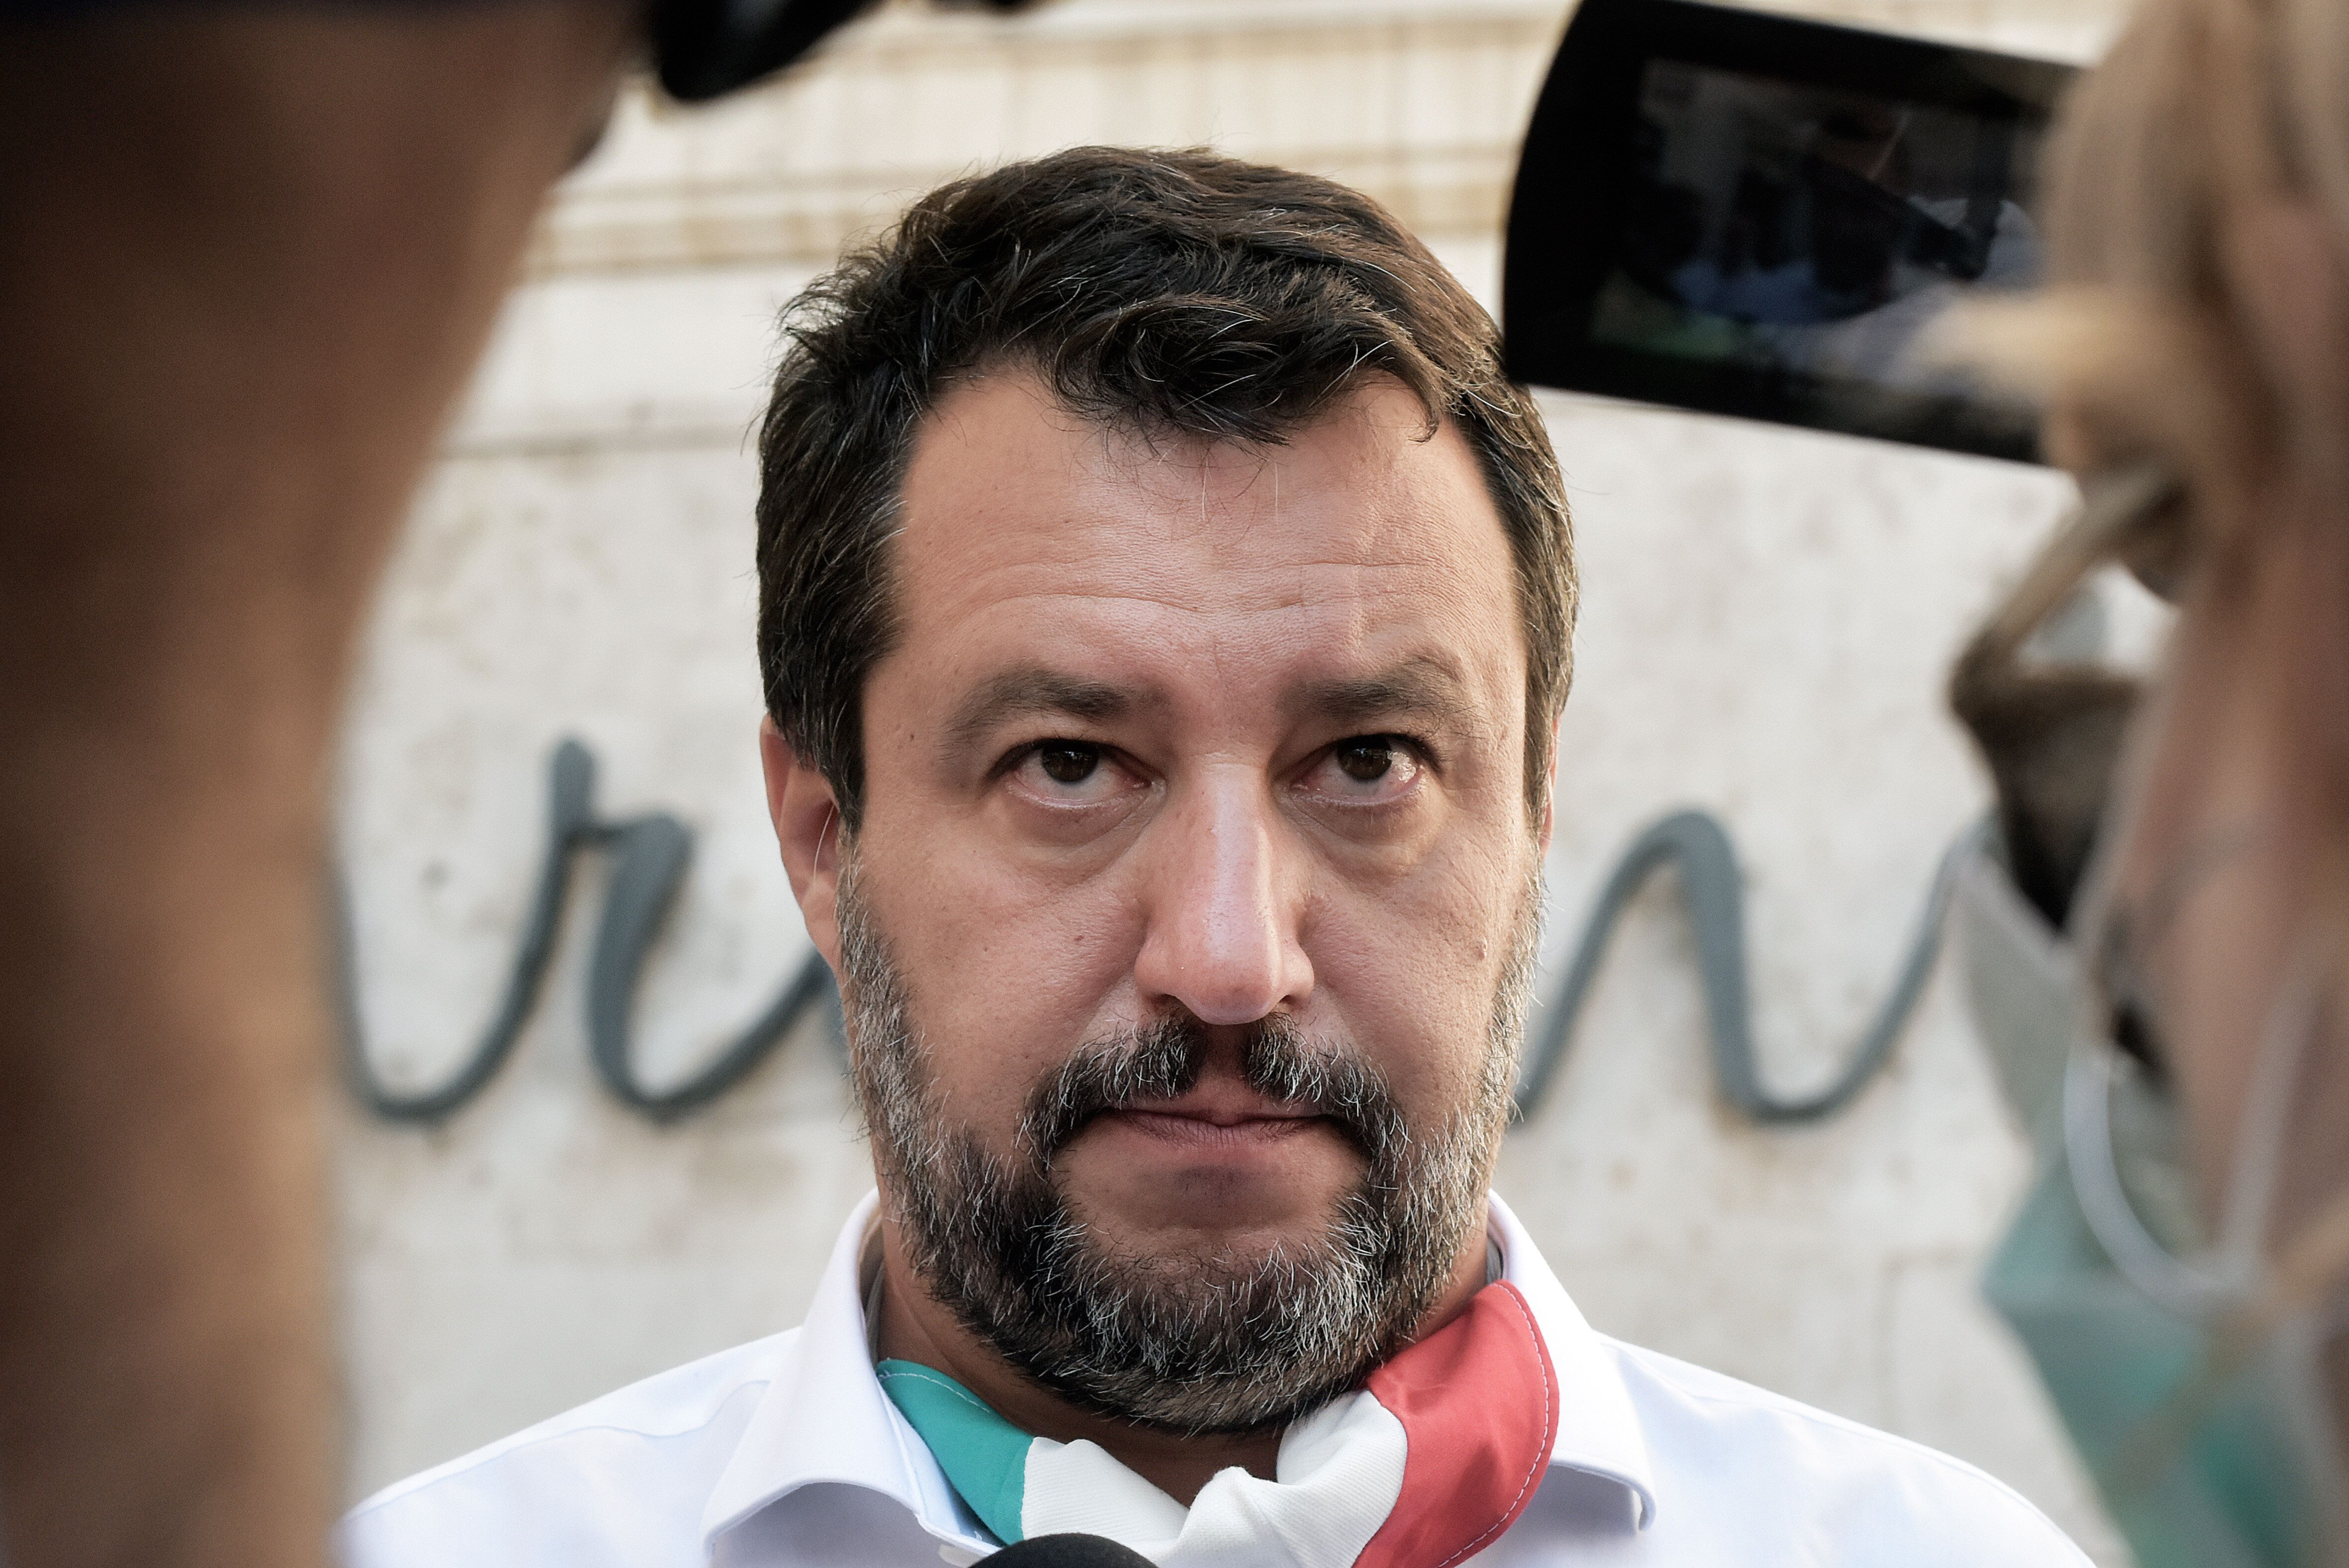 Lega Party leader Matteo Salvini, on July 28 in Rome.